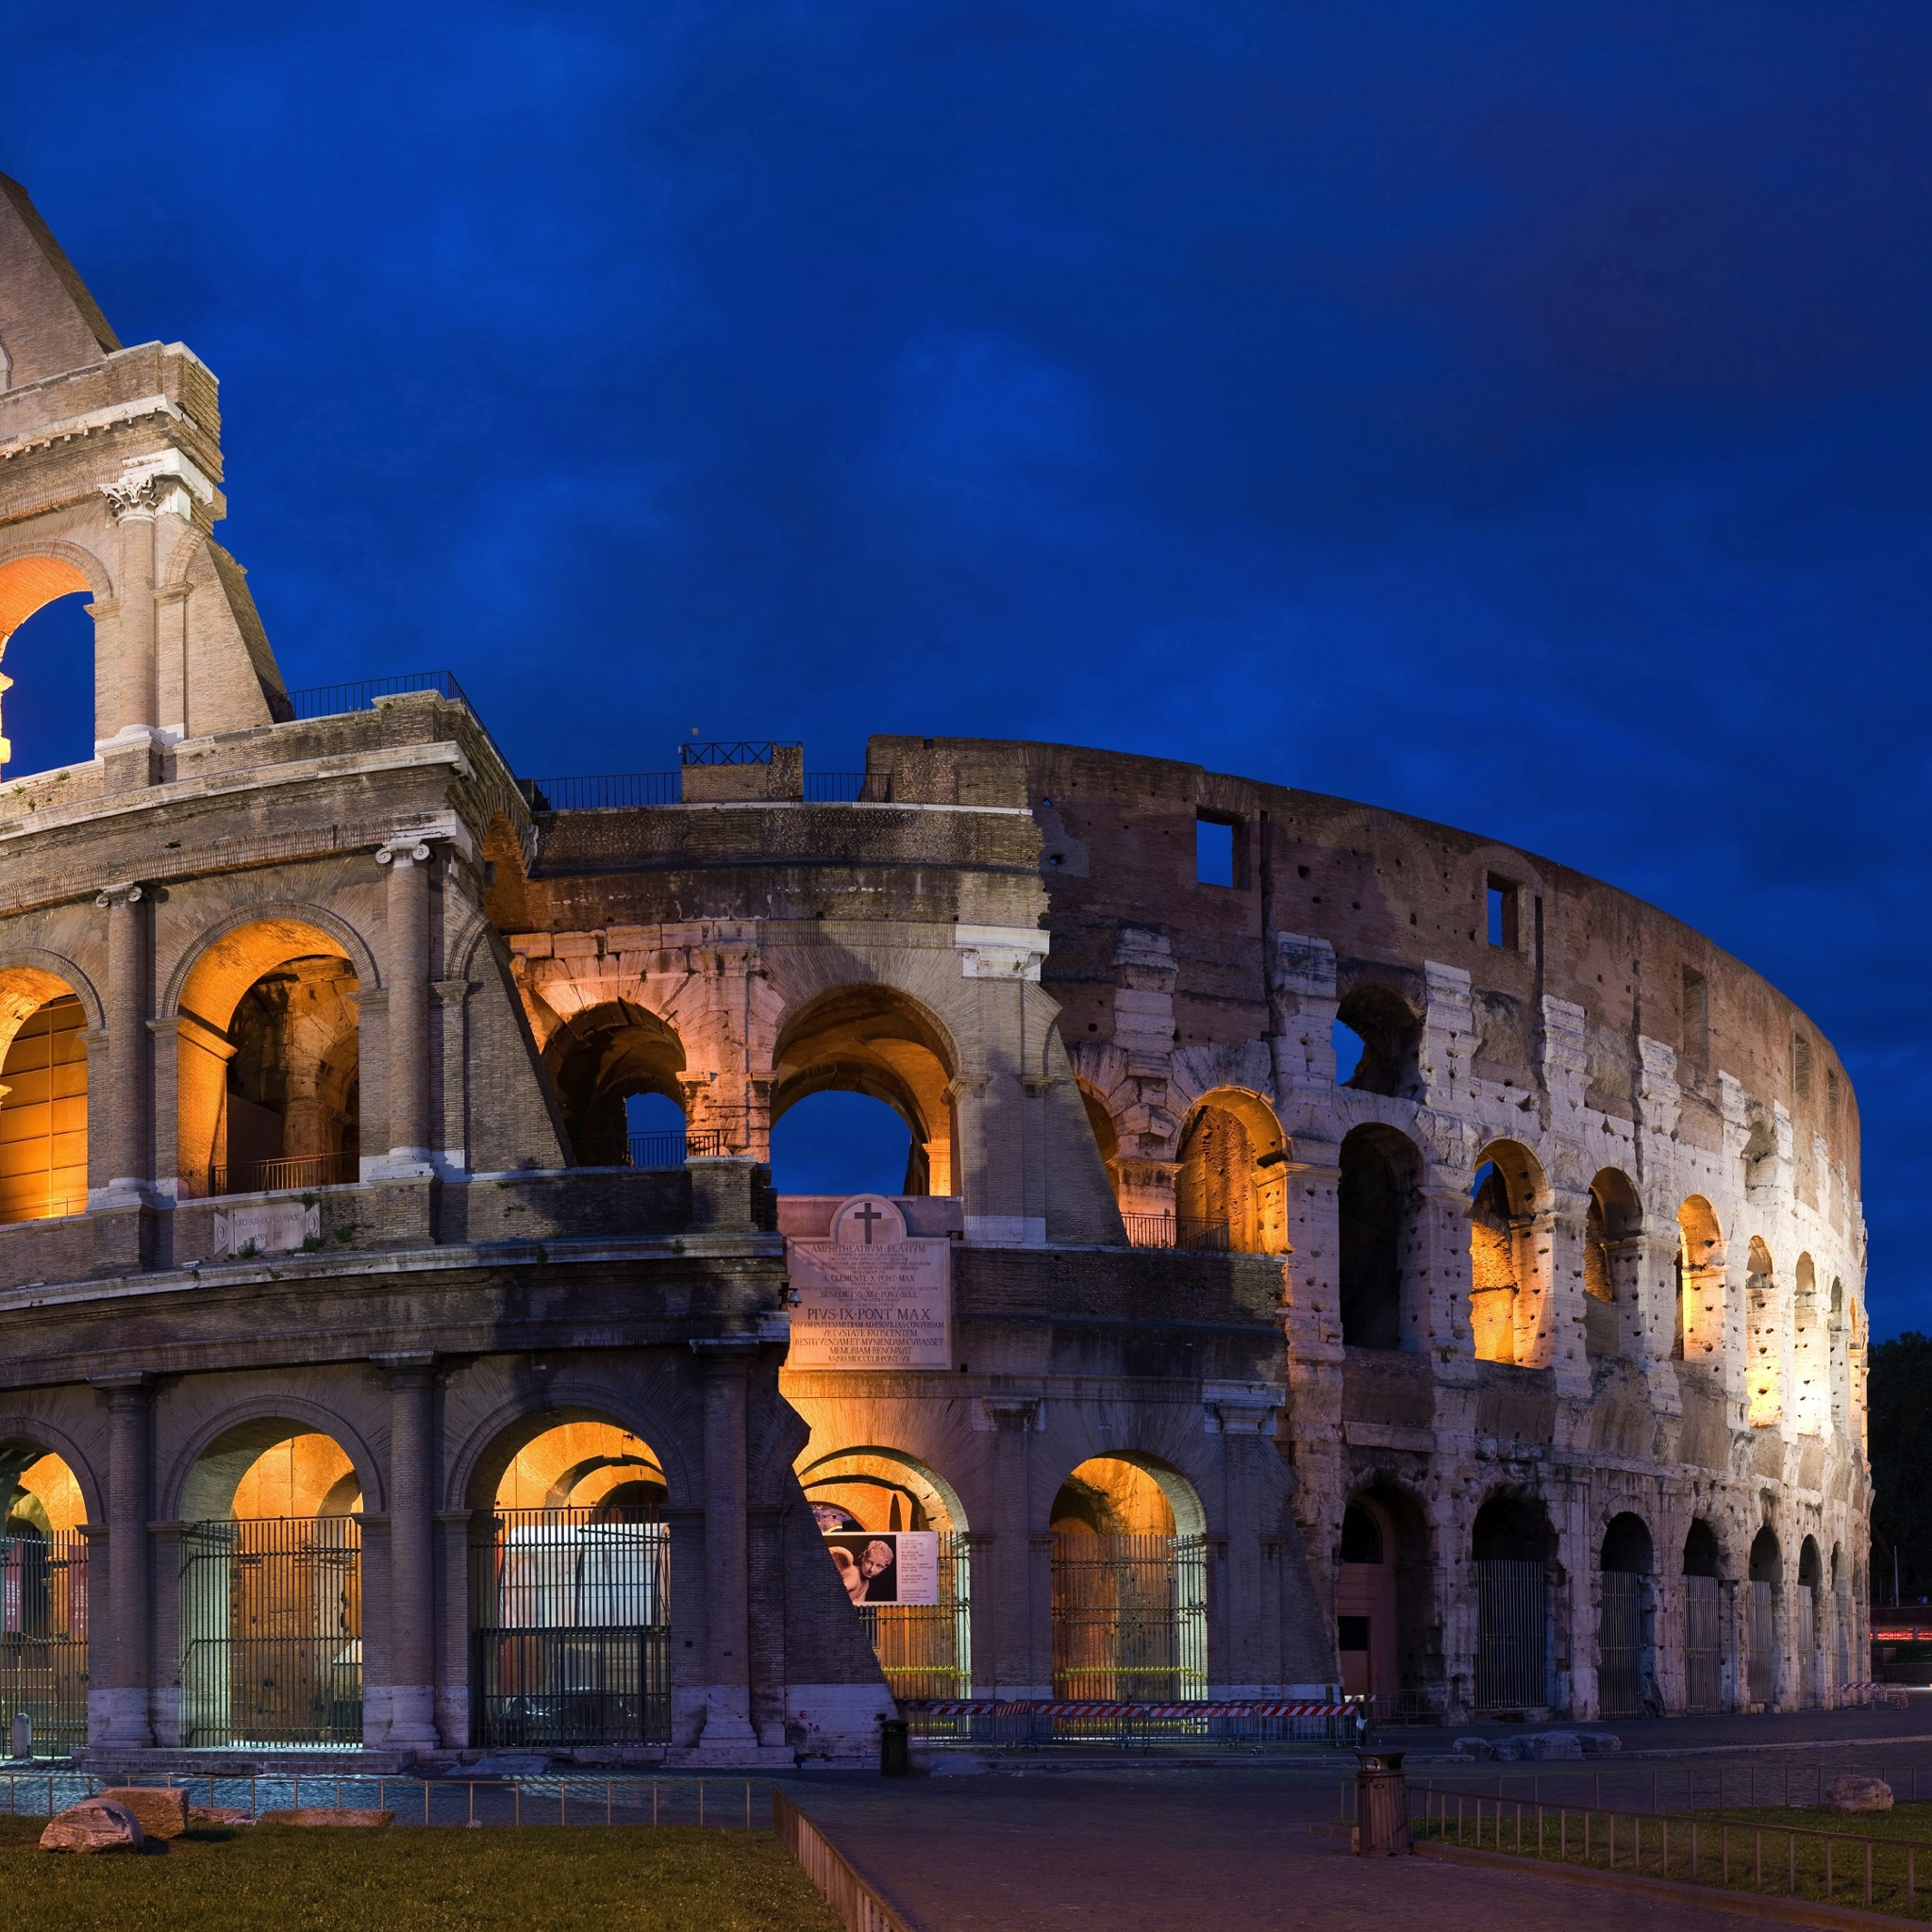 Le-Colisee-de-Rome_3Wallpapers_iPad